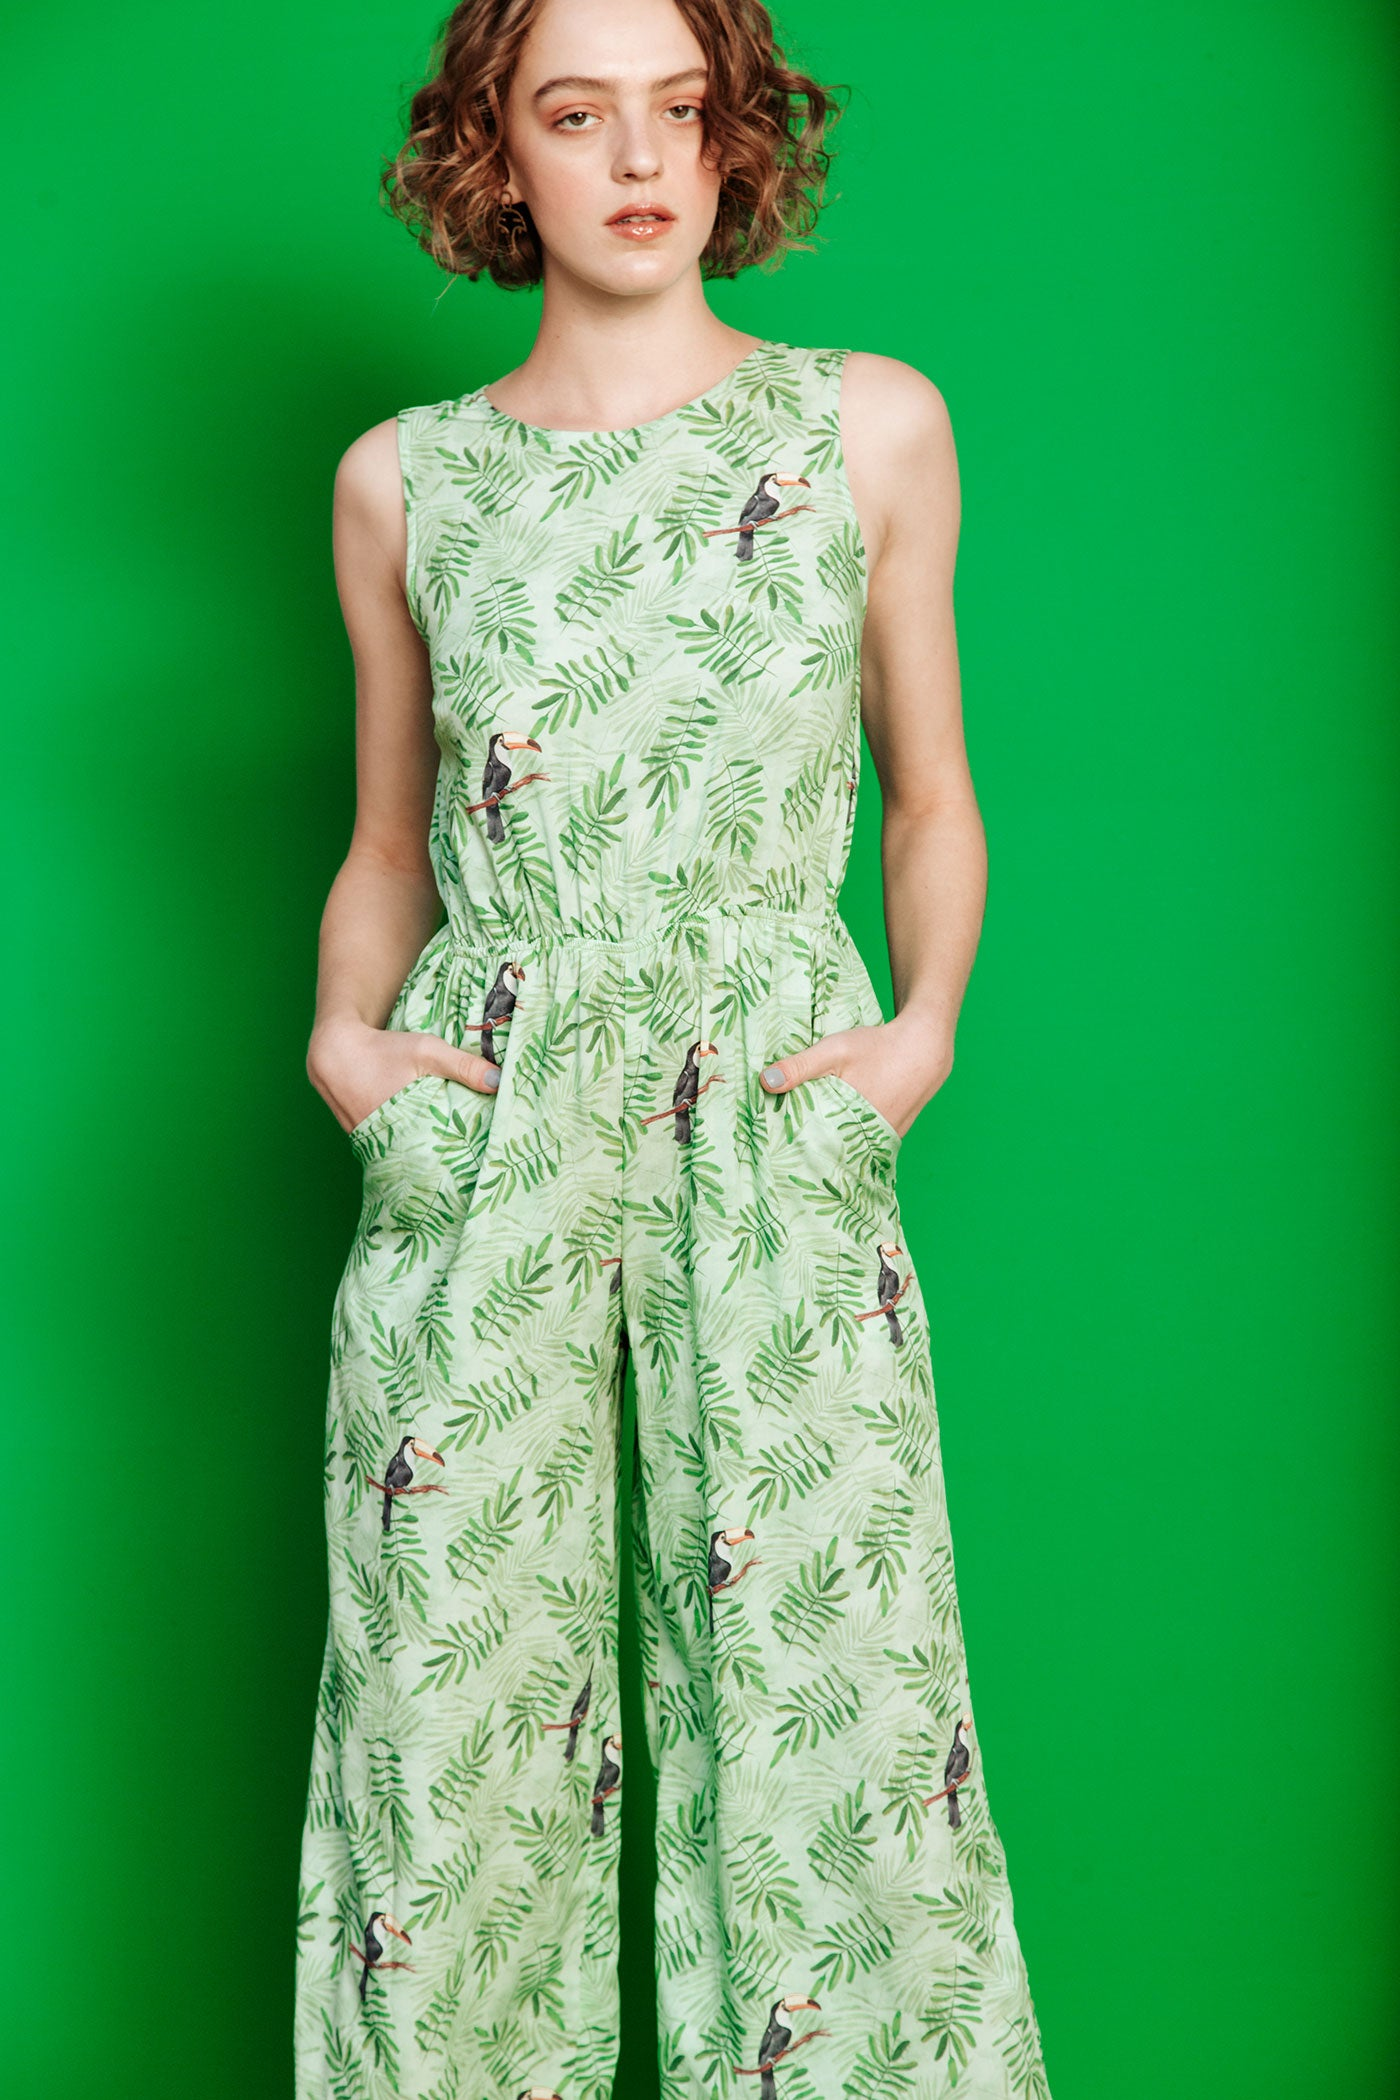 Toucan Jumpsuit - Green Toucans (sizes available: 30, 32 & 34)